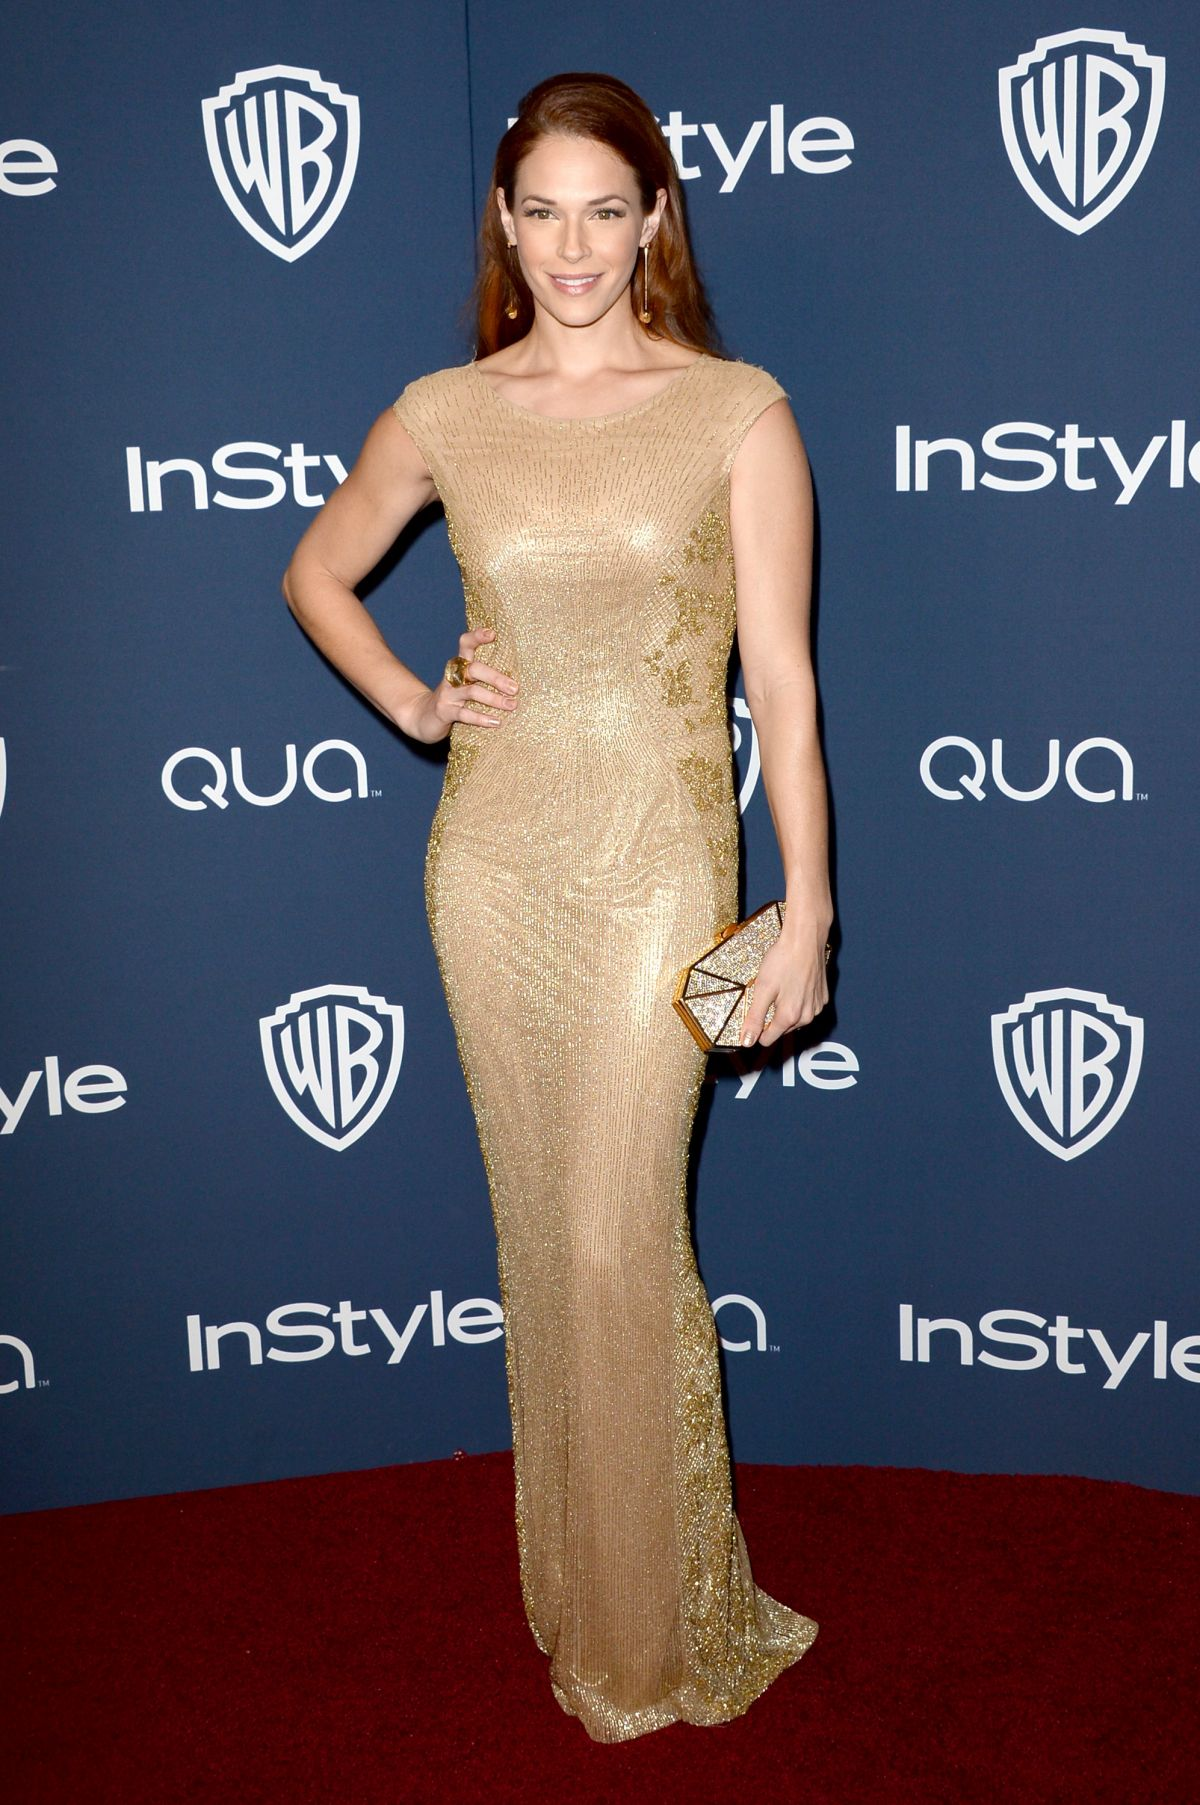 AMANDA RIGHETTI at Instyle and Warner Bros. Golden Globes Afterparty